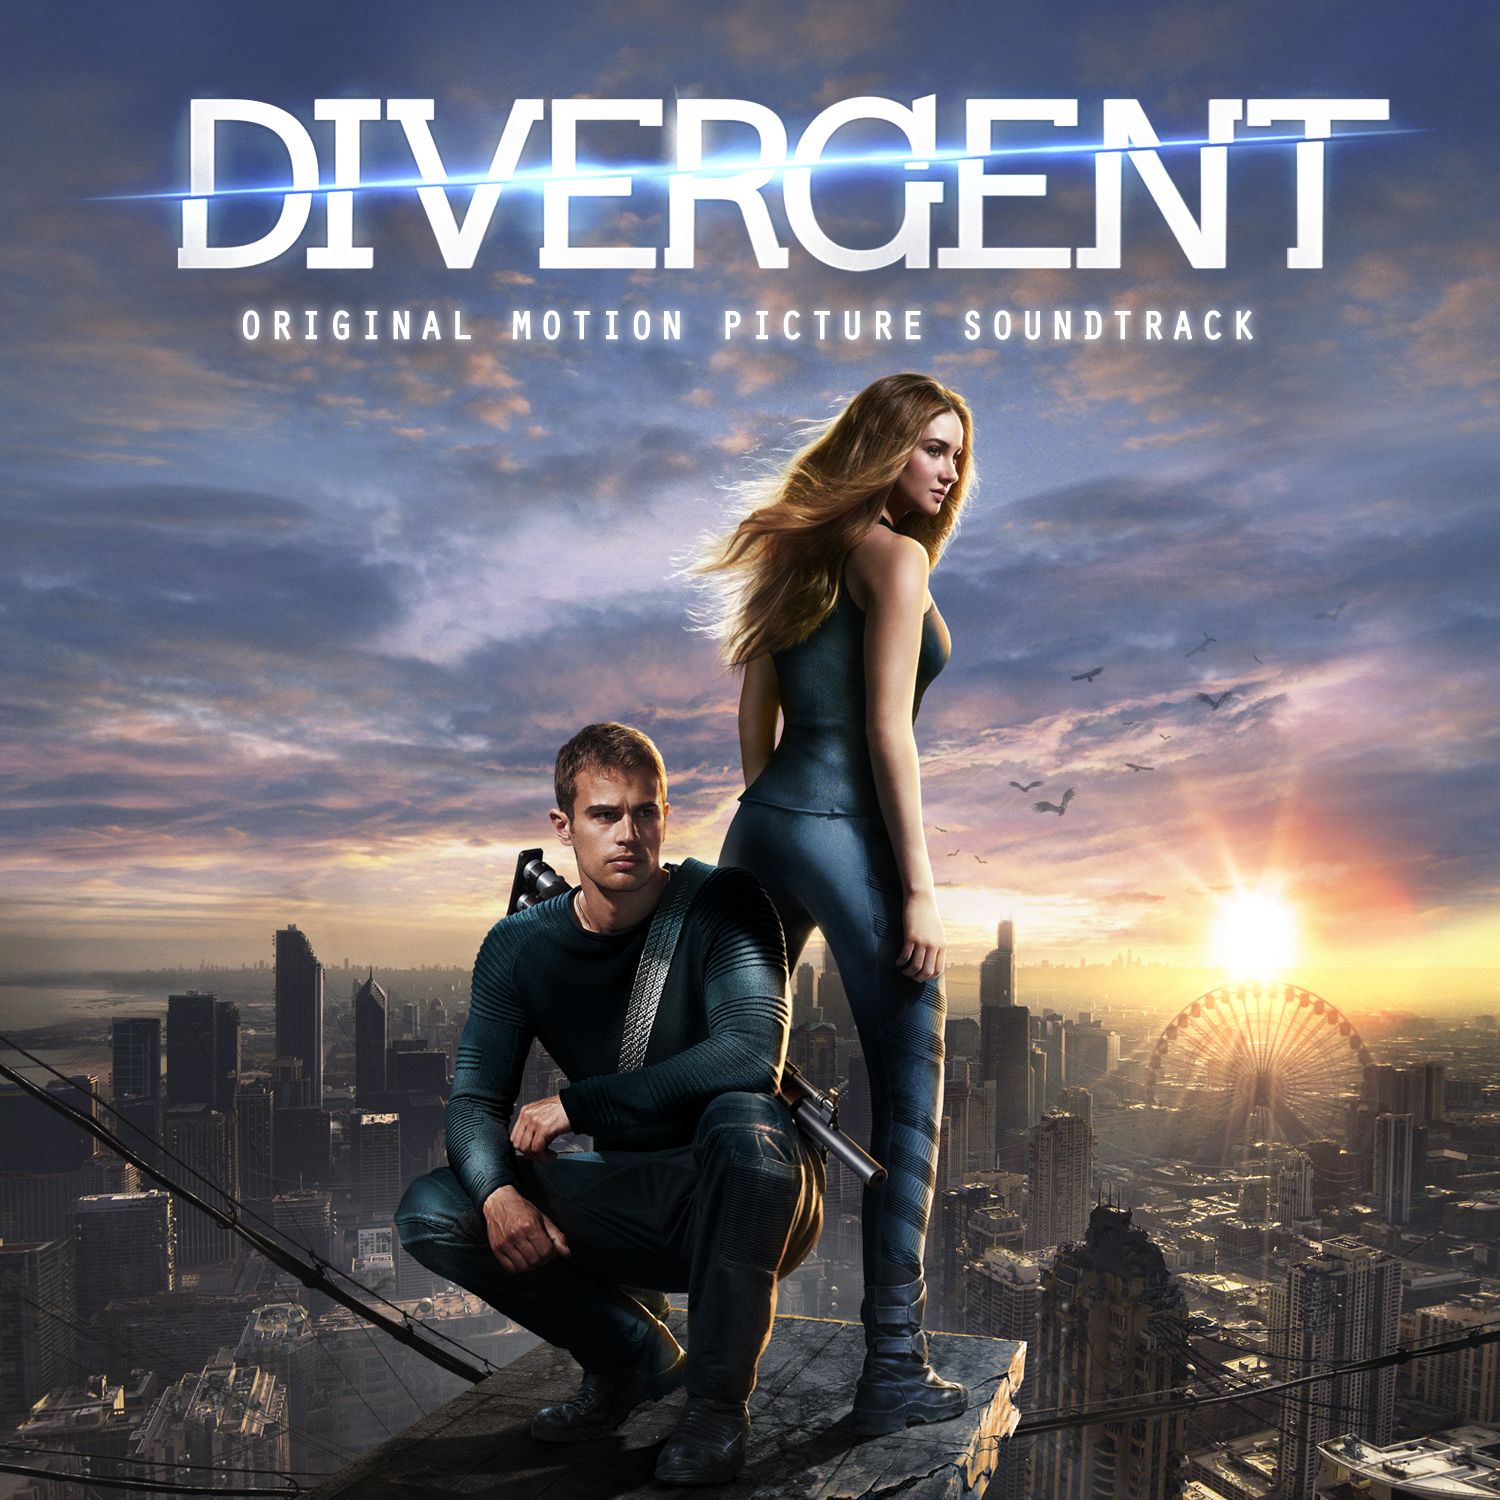 """News Added Jan 25, 2014 The highly anticipated soundtrack for what could be the next """"Hunger Games"""". The film """"Divergent"""" opens on March 21st, ten days after the soundtrack's release. Ellie Goulding and Zedd have already confirmed their affiliation with the film. As we get closer to the film more artists will be announced. Submitted […]"""